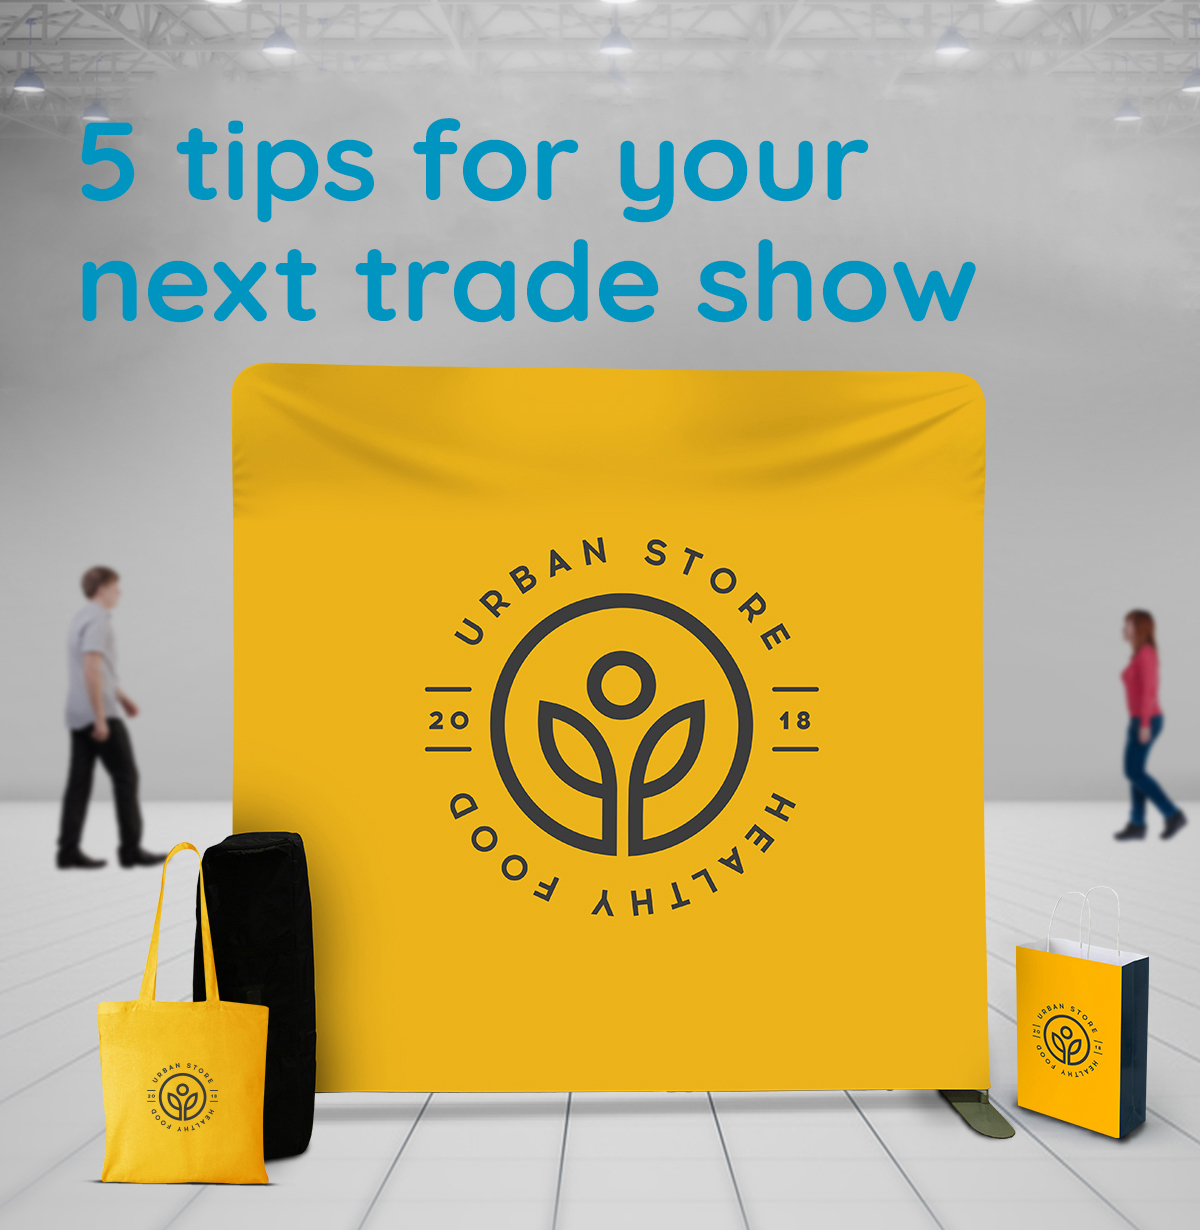 Successful trade show? Here are 5 top tips